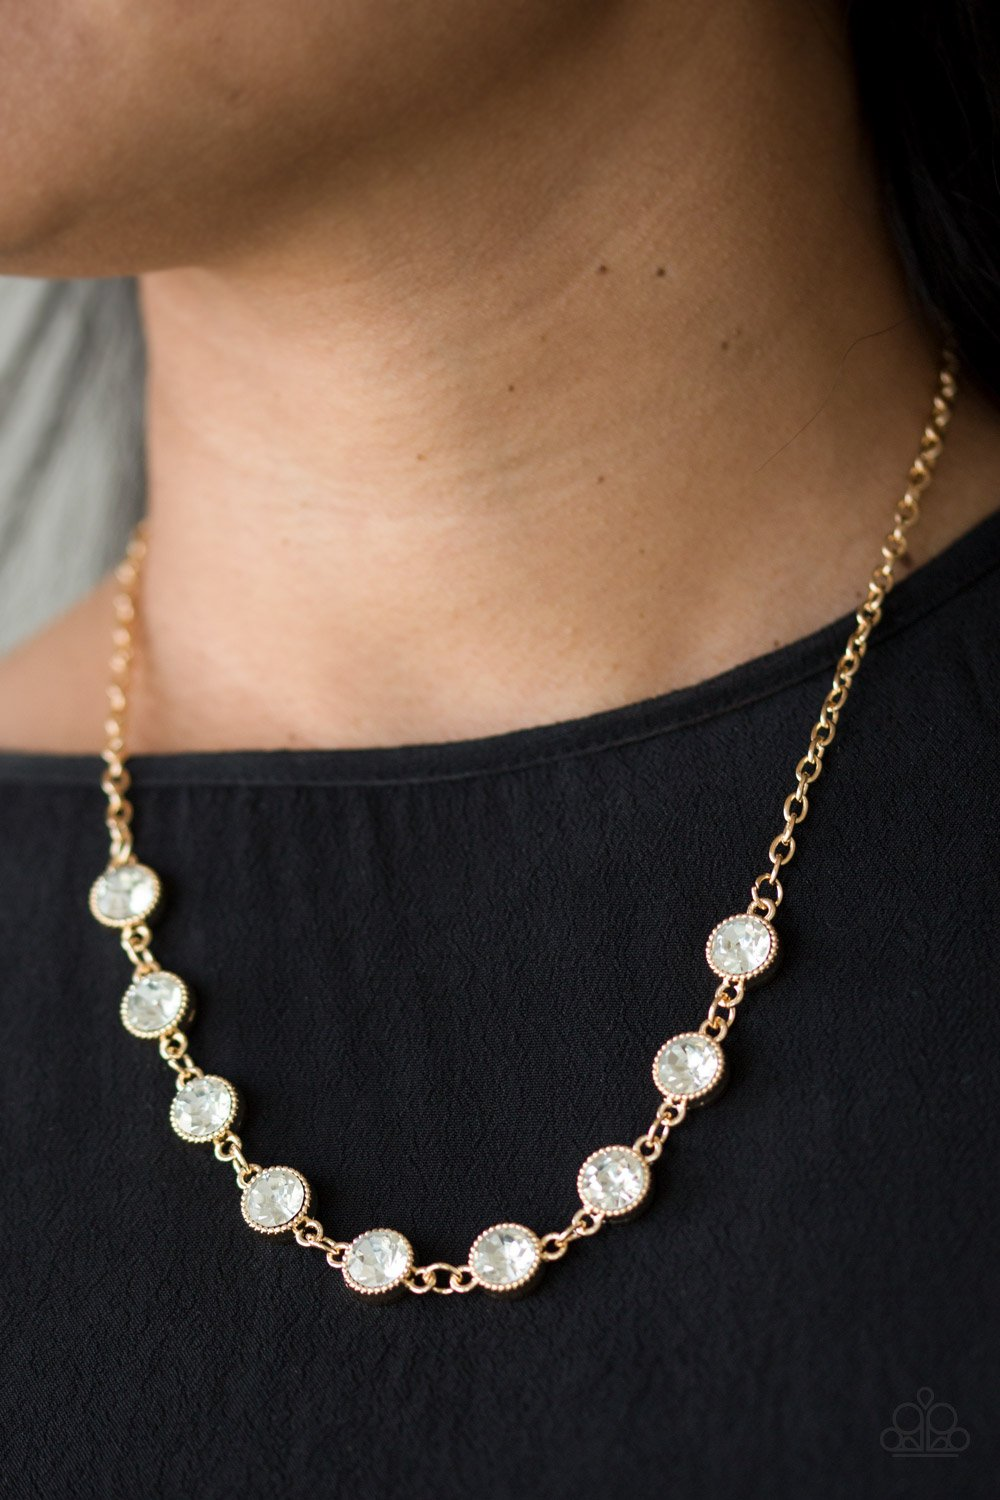 Starlit Socials - gold - Paparazzi necklace